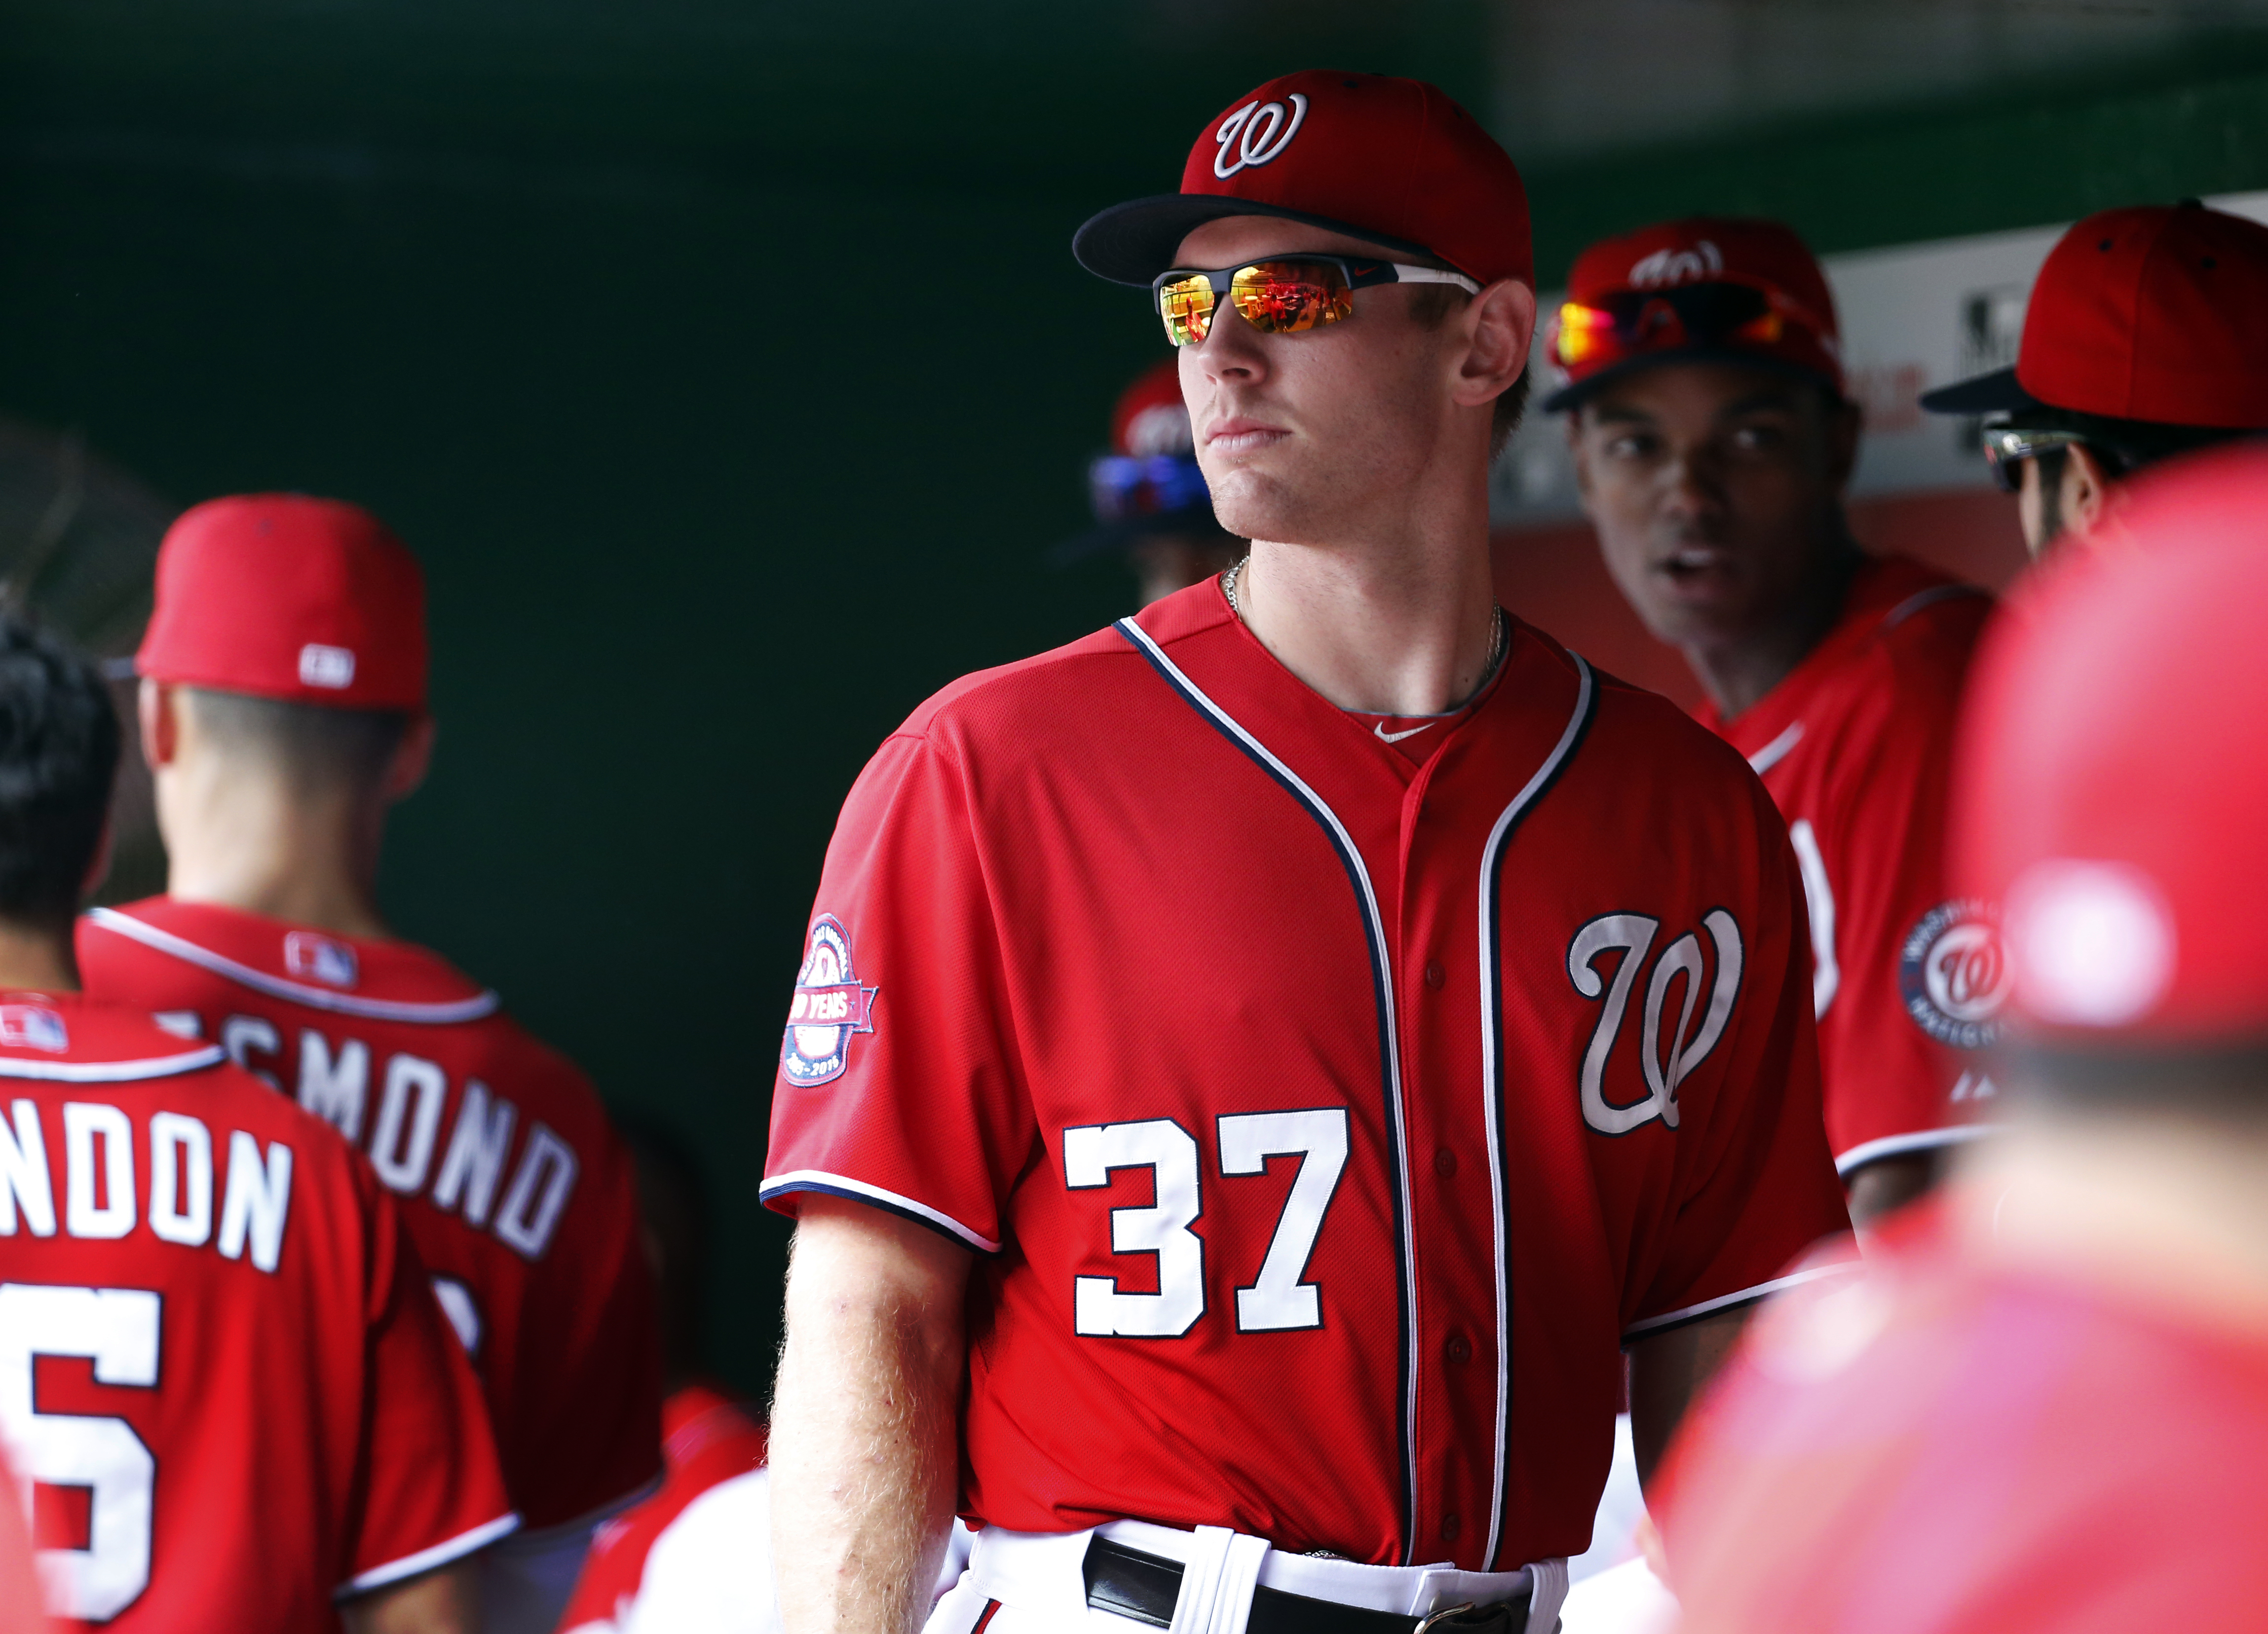 Washington Nationals starting pitcher Stephen Strasburg (37) stands in the dugout before a baseball game against the Pittsburgh Pirates at Nationals Park, Saturday, June 20, 2015, in Washington. (AP Photo/Alex Brandon)